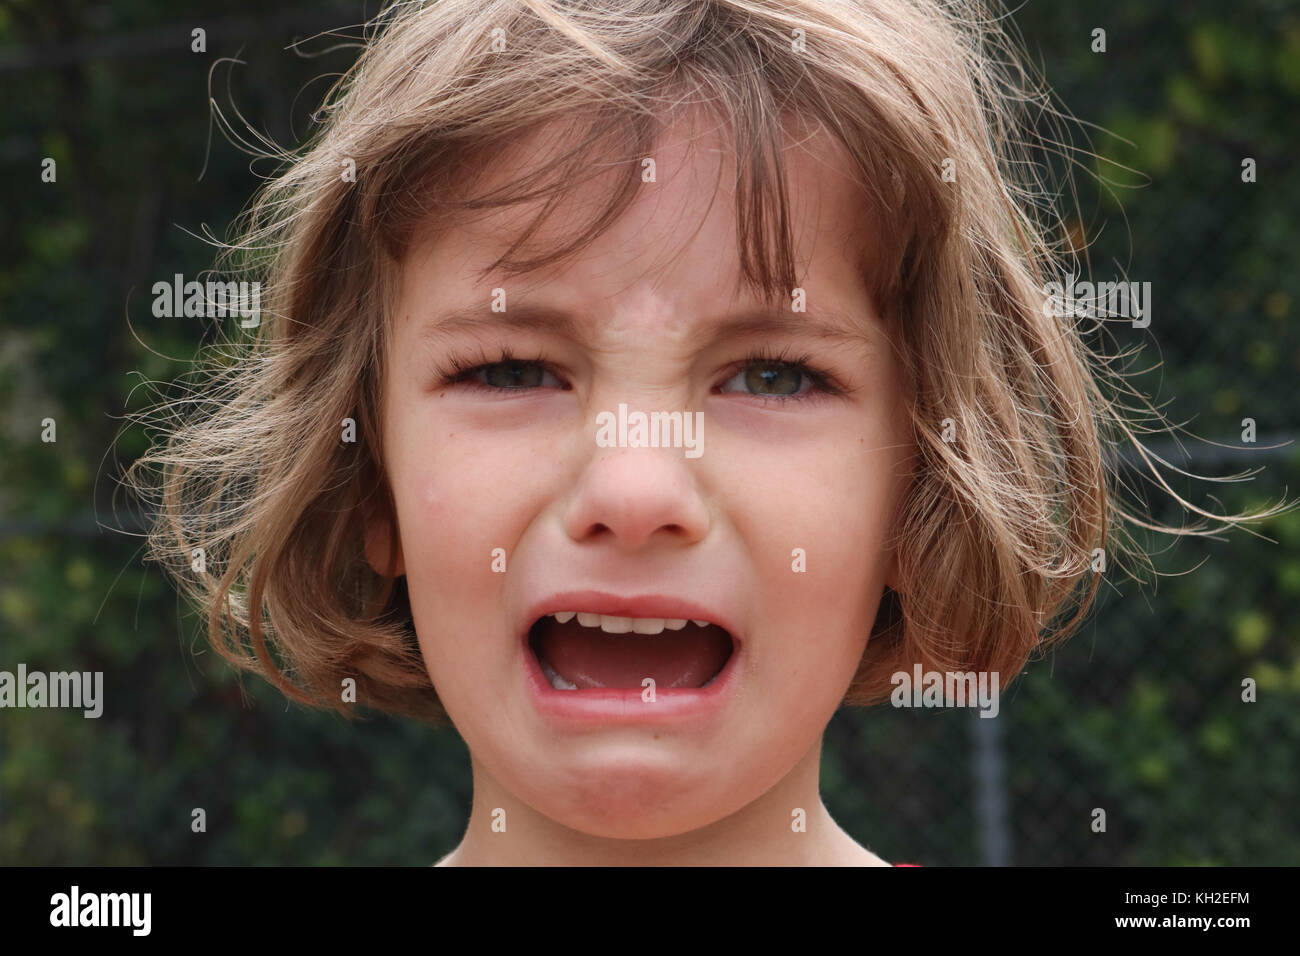 Portrait of a young girl who is very angry and upset - Stock Image